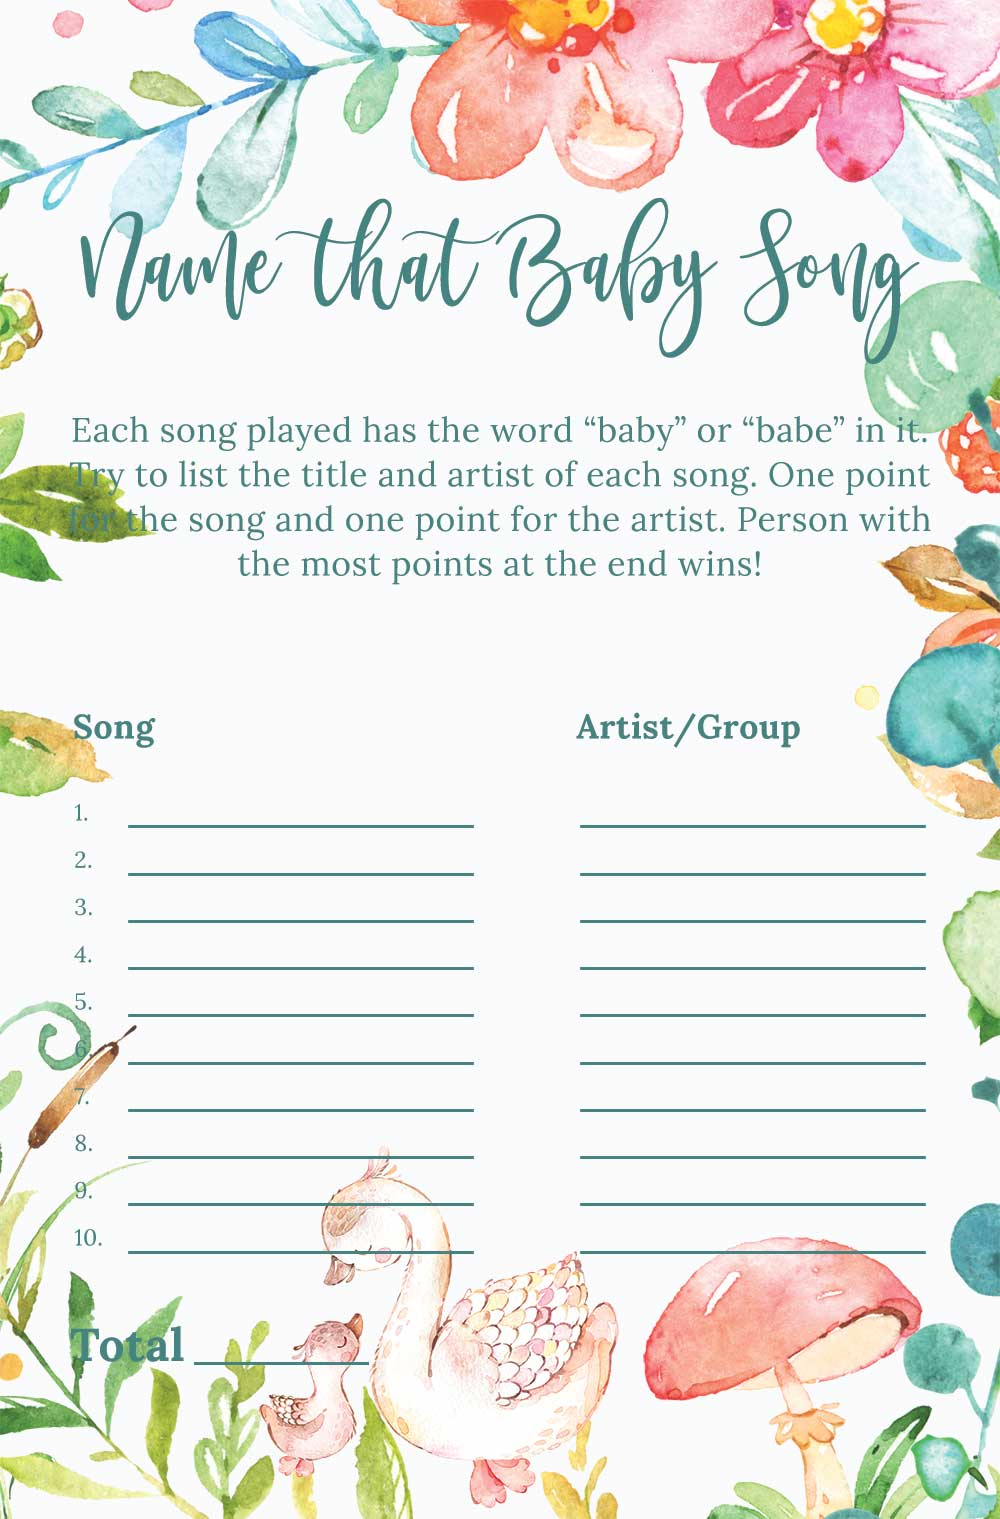 Name that baby song game - Raspberry theme